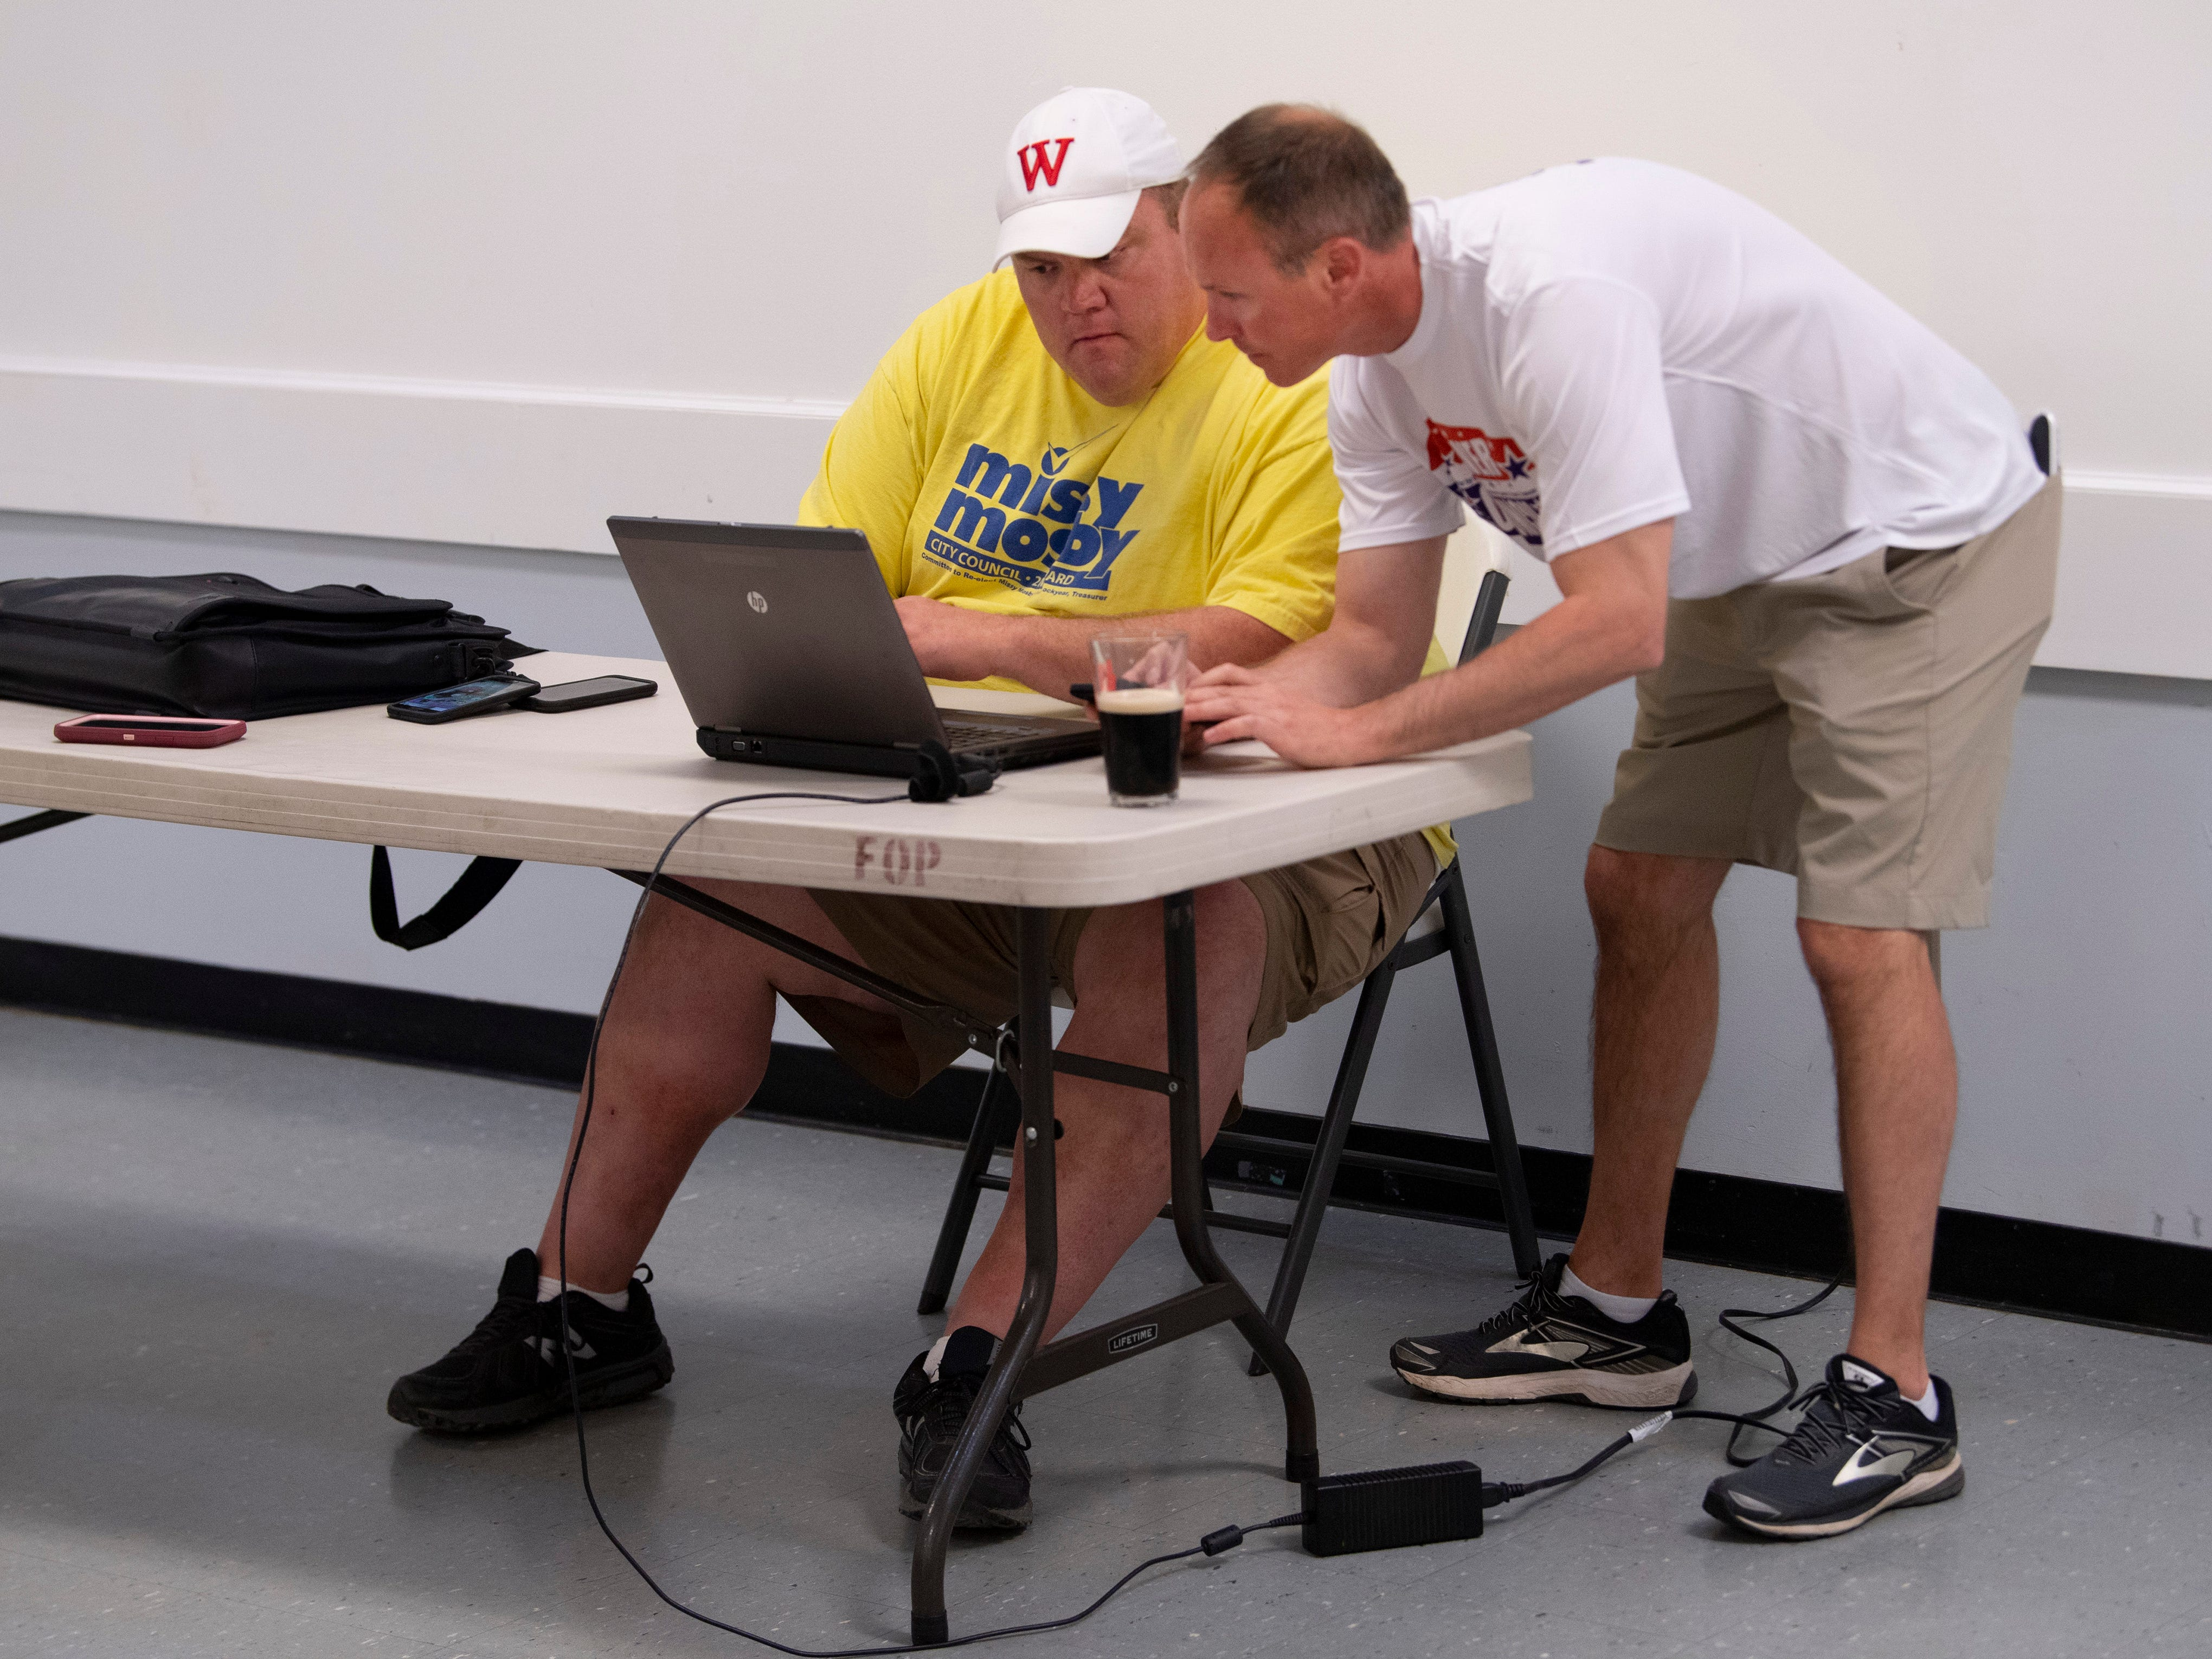 City Council member Jonathan Weaver (D), right, and campaign volunteer Chris Cooke wait for results from Evansville's primary election at the Fraternal Order of Police Tuesday night. Weaver was one of three Democrats to win their races to compete against the Republicans for the at-large seat in the fall general election.